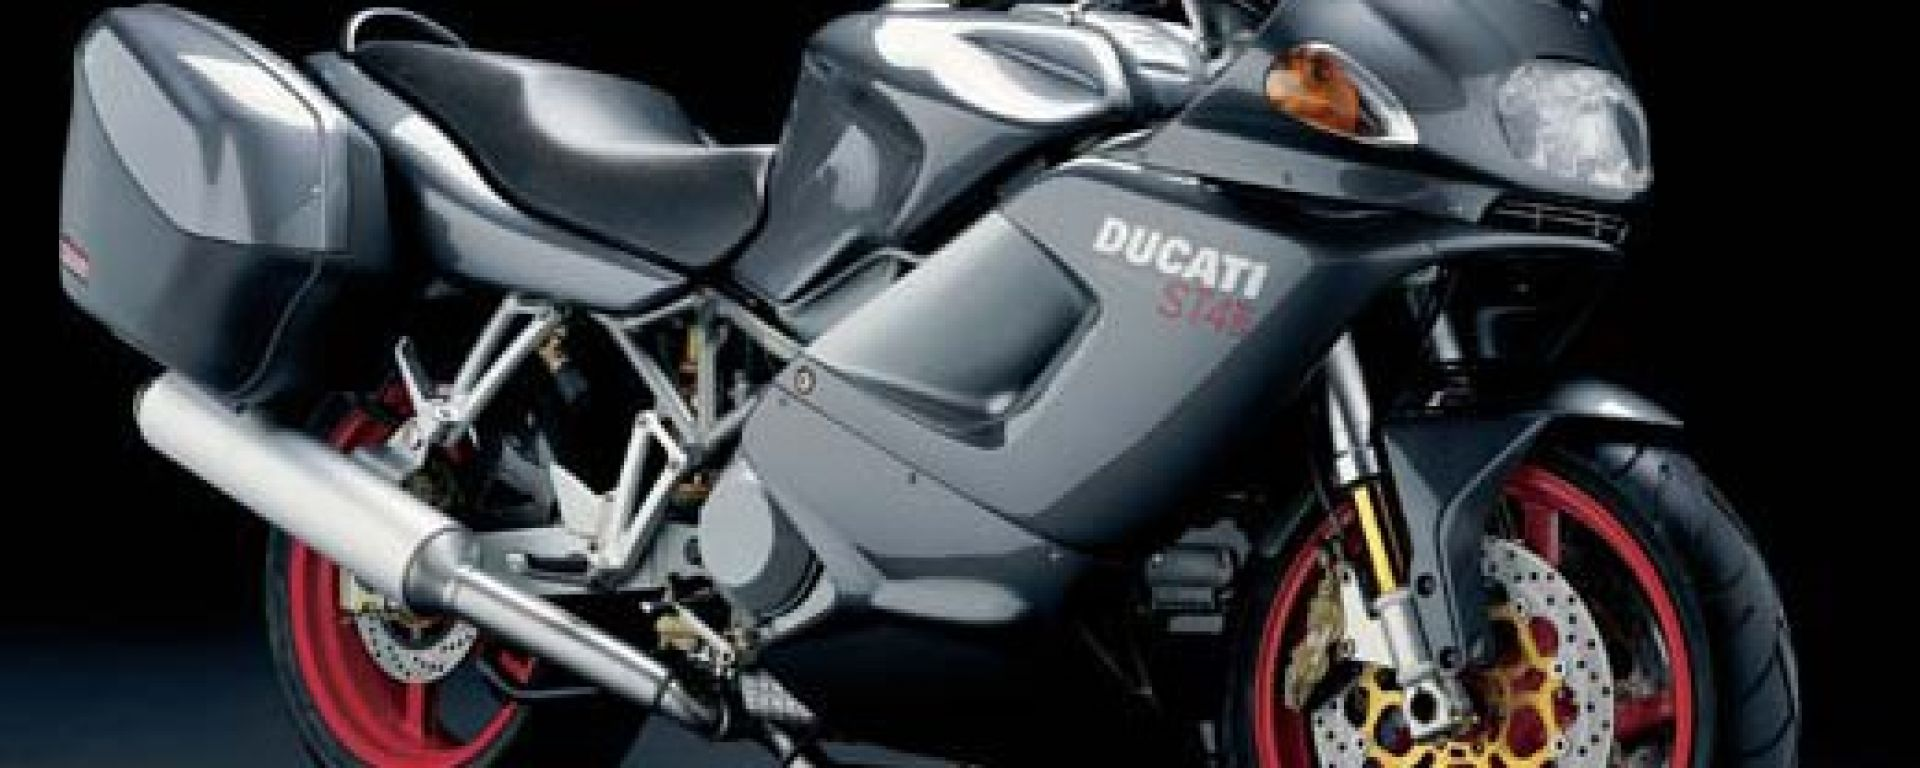 Ducati ST4 S ABS